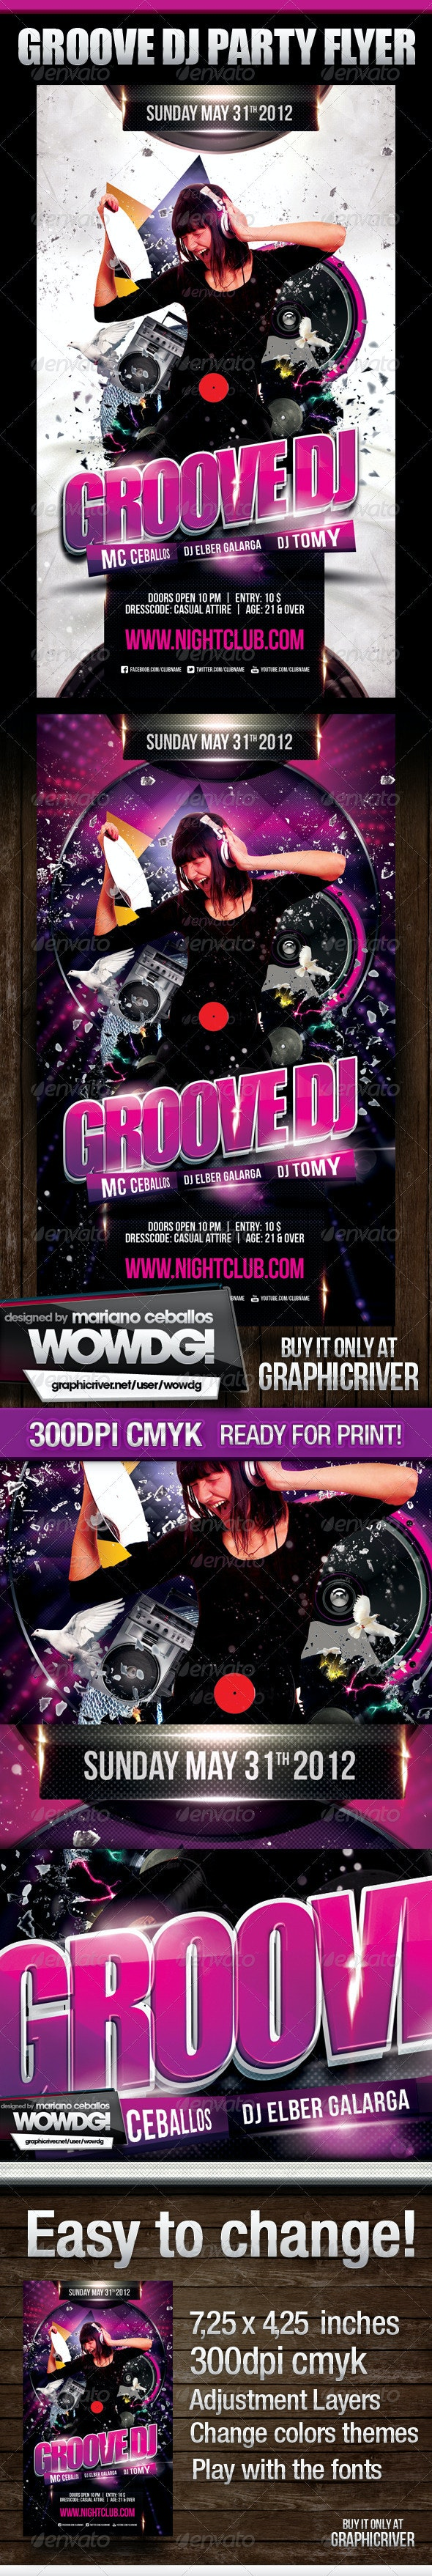 Groove Dj Party Flyer - Clubs & Parties Events